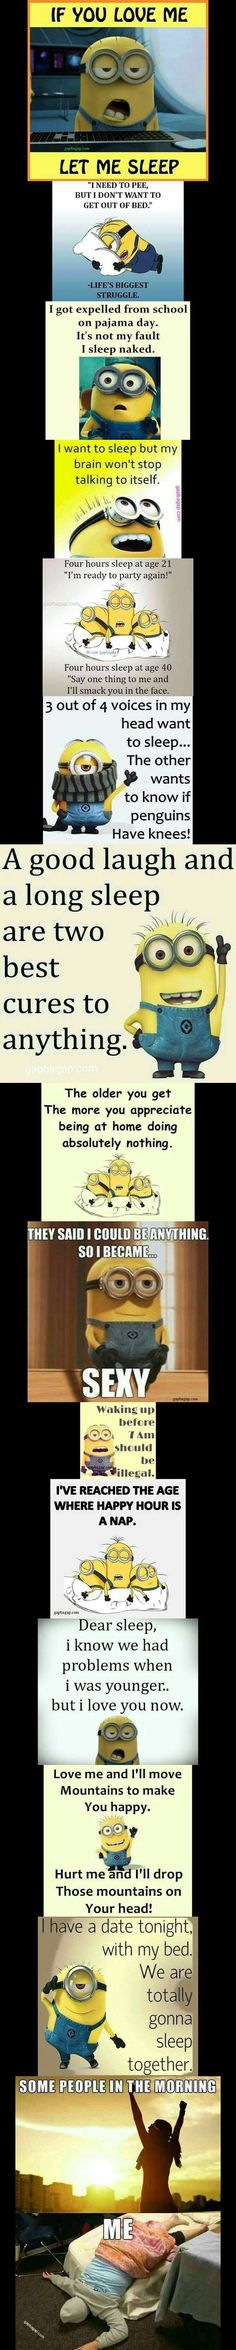 Top 15 Funny Quotes About Sleeps By The Funny funny minion quotes Minion Quote Minions Quotes Sleeps Top Minion-Quotes Top 15 Funny Quotes A… – Best Friends Forever Minion Jokes, Minions Quotes, Funny Minion, Minion Stuff, Minion Pictures, Funny Pictures, Minions Pics, Funny Pics, Life Humor